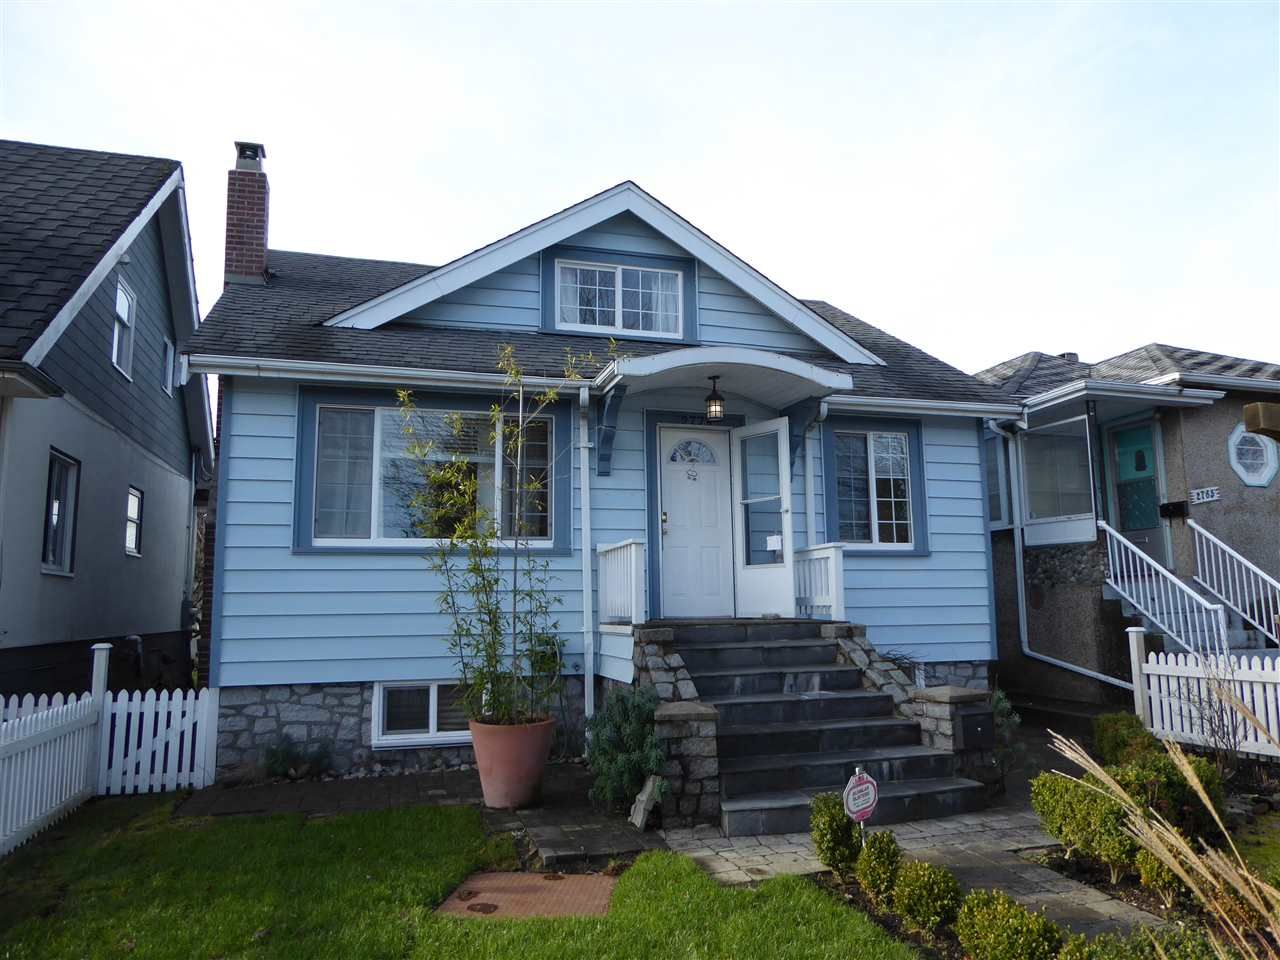 Main Photo: 2779 NANAIMO Street in Vancouver: Grandview VE House for sale (Vancouver East)  : MLS®# R2023376